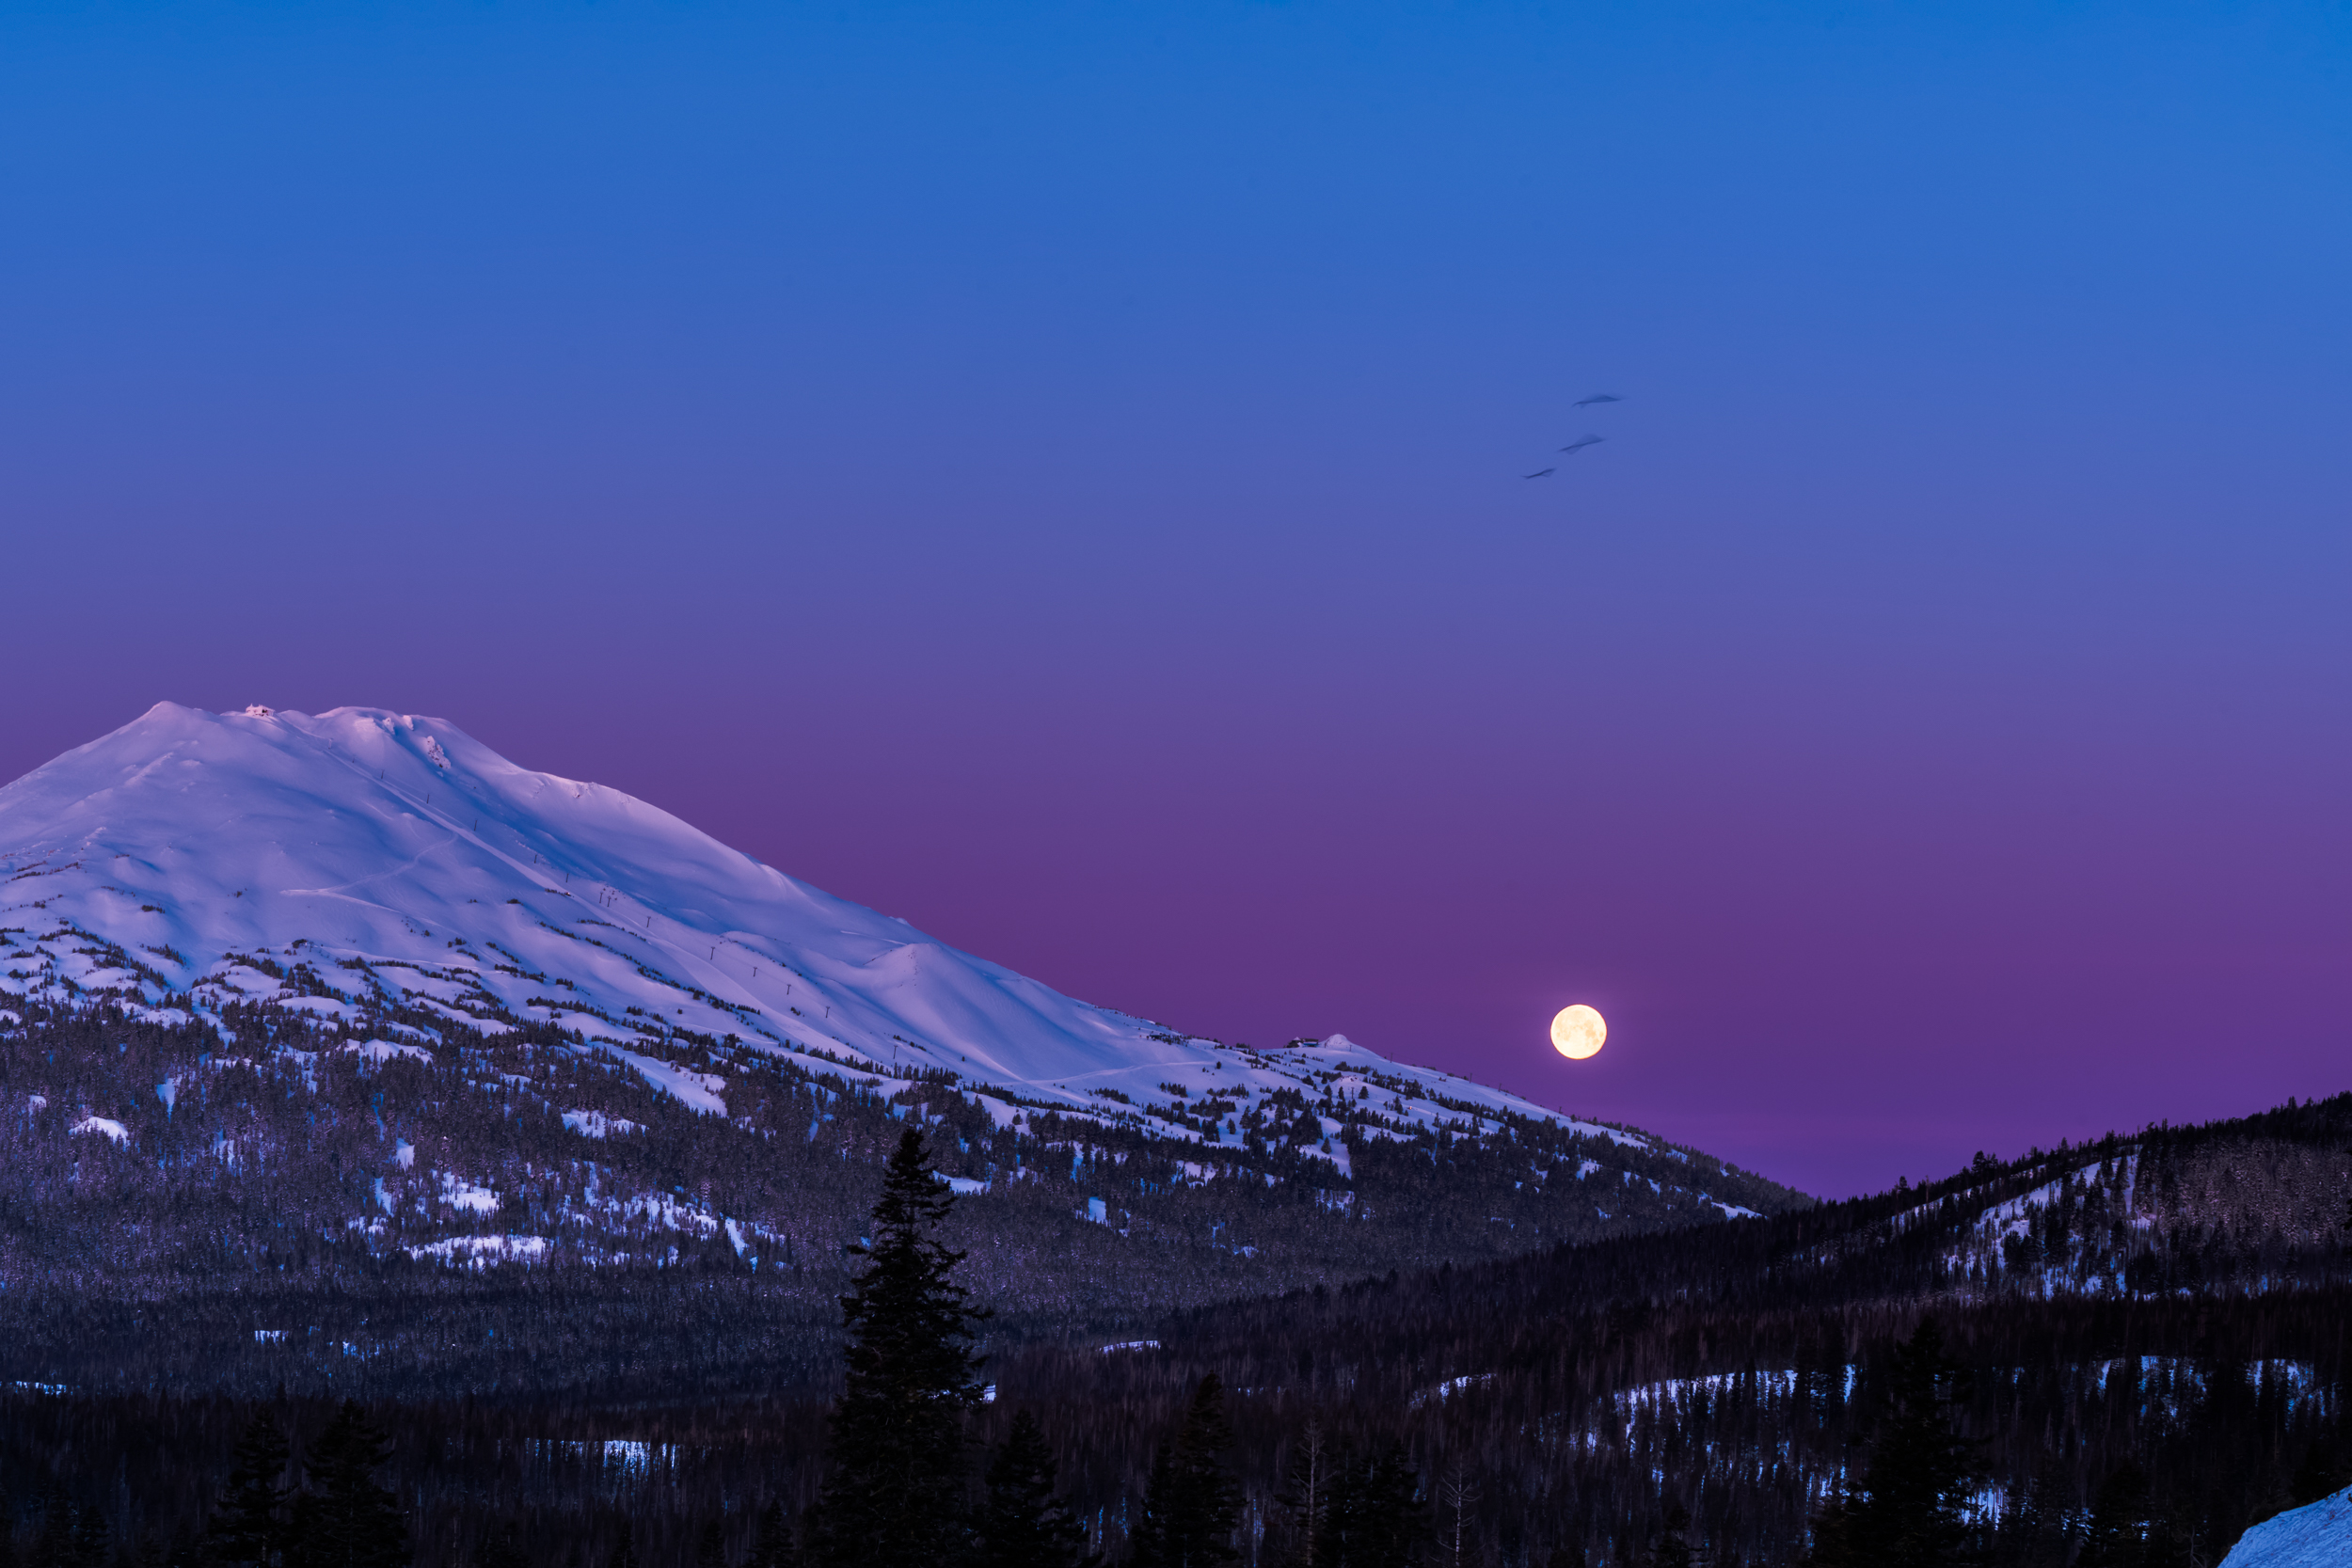 Mt-Bachelor-Moonset-Alpenglow-Steve-Aliberti-3753.jpg